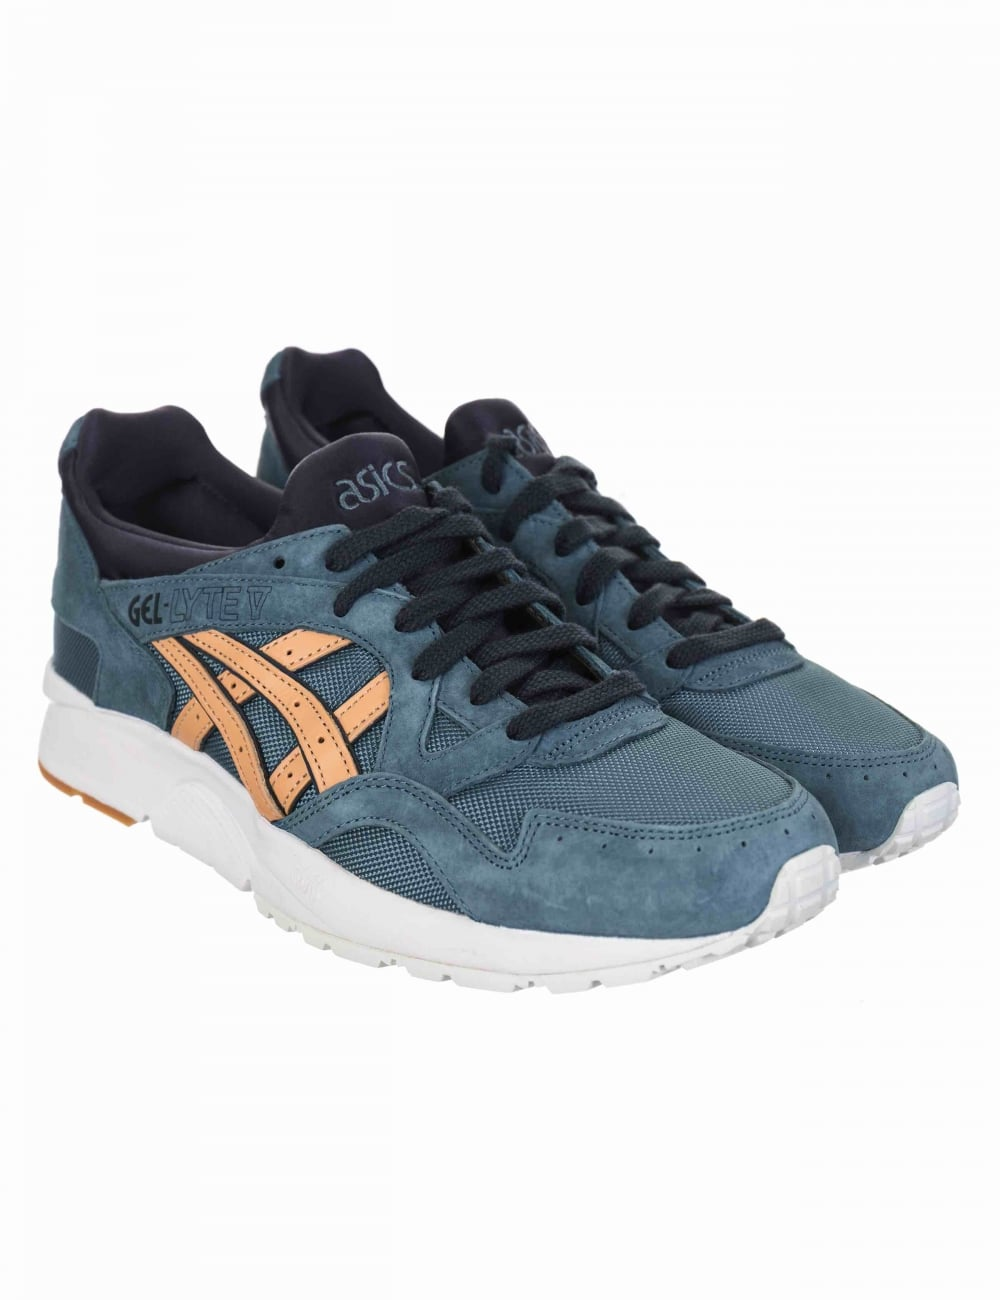 promo code fa430 7a1c7 Gel Lyte V Shoes - Blue Mirage/Sand (Veg-Tan Pack)